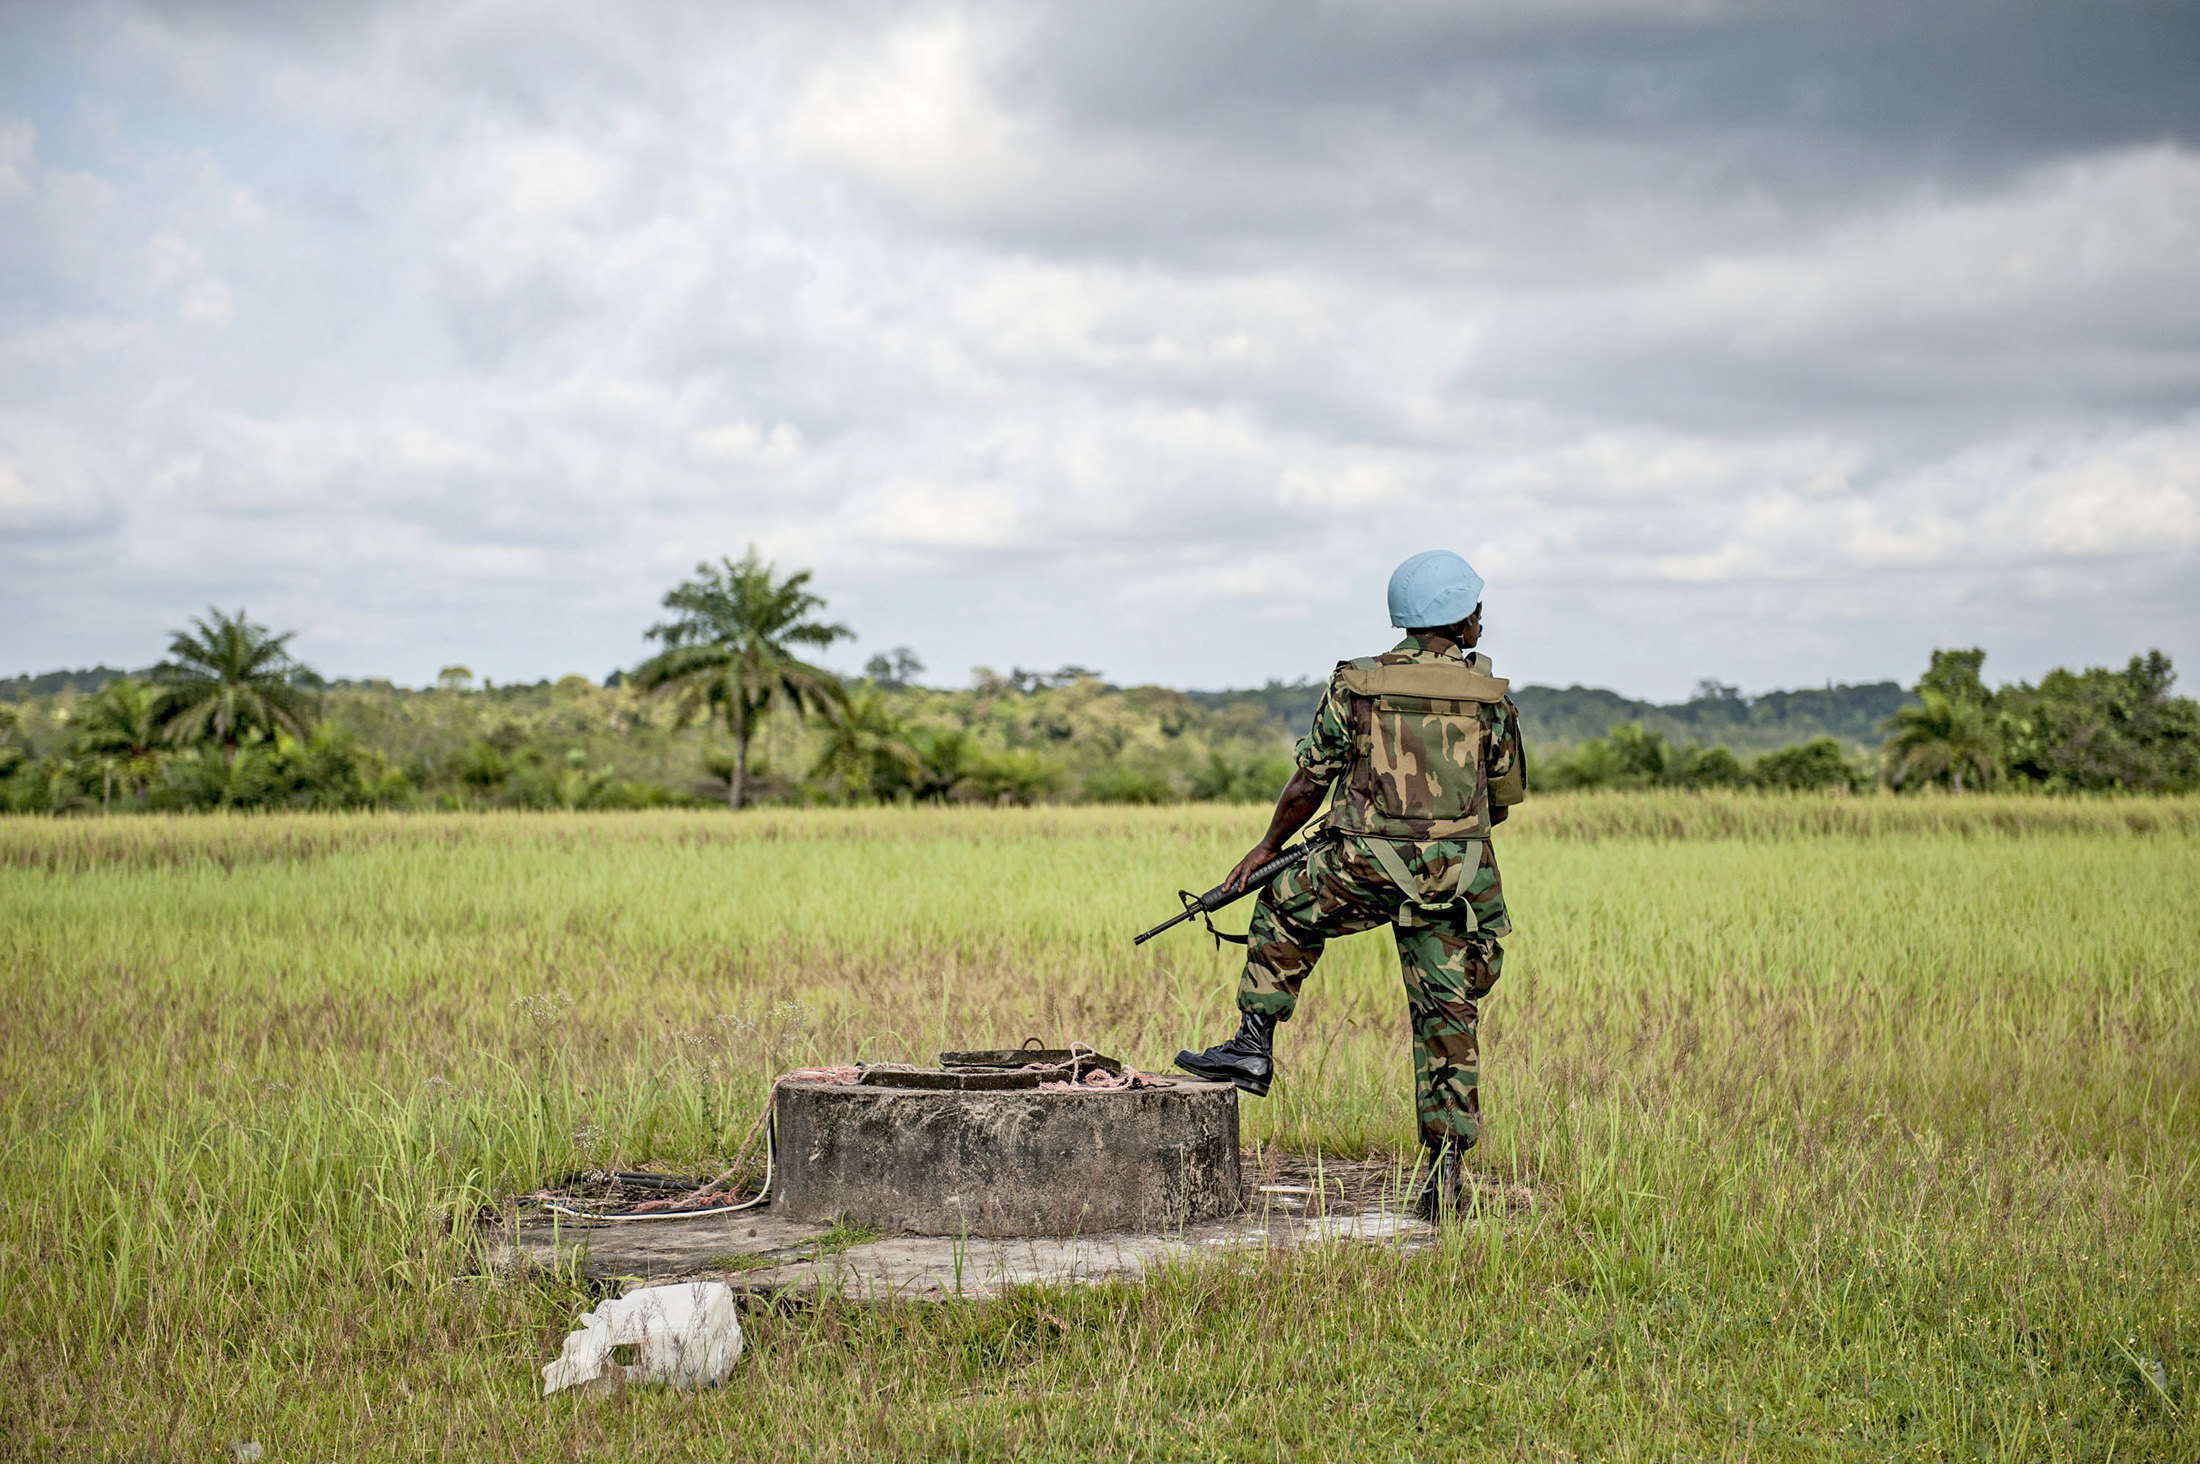 A Ghanaian peacekeeper with the UN Mission in Liberia (UNMIL) is pictured on guard duty during a visit by Karin Landgren, Special Representative of the Secretary-General and Head of UNMIL, in Cestos City, Liberia